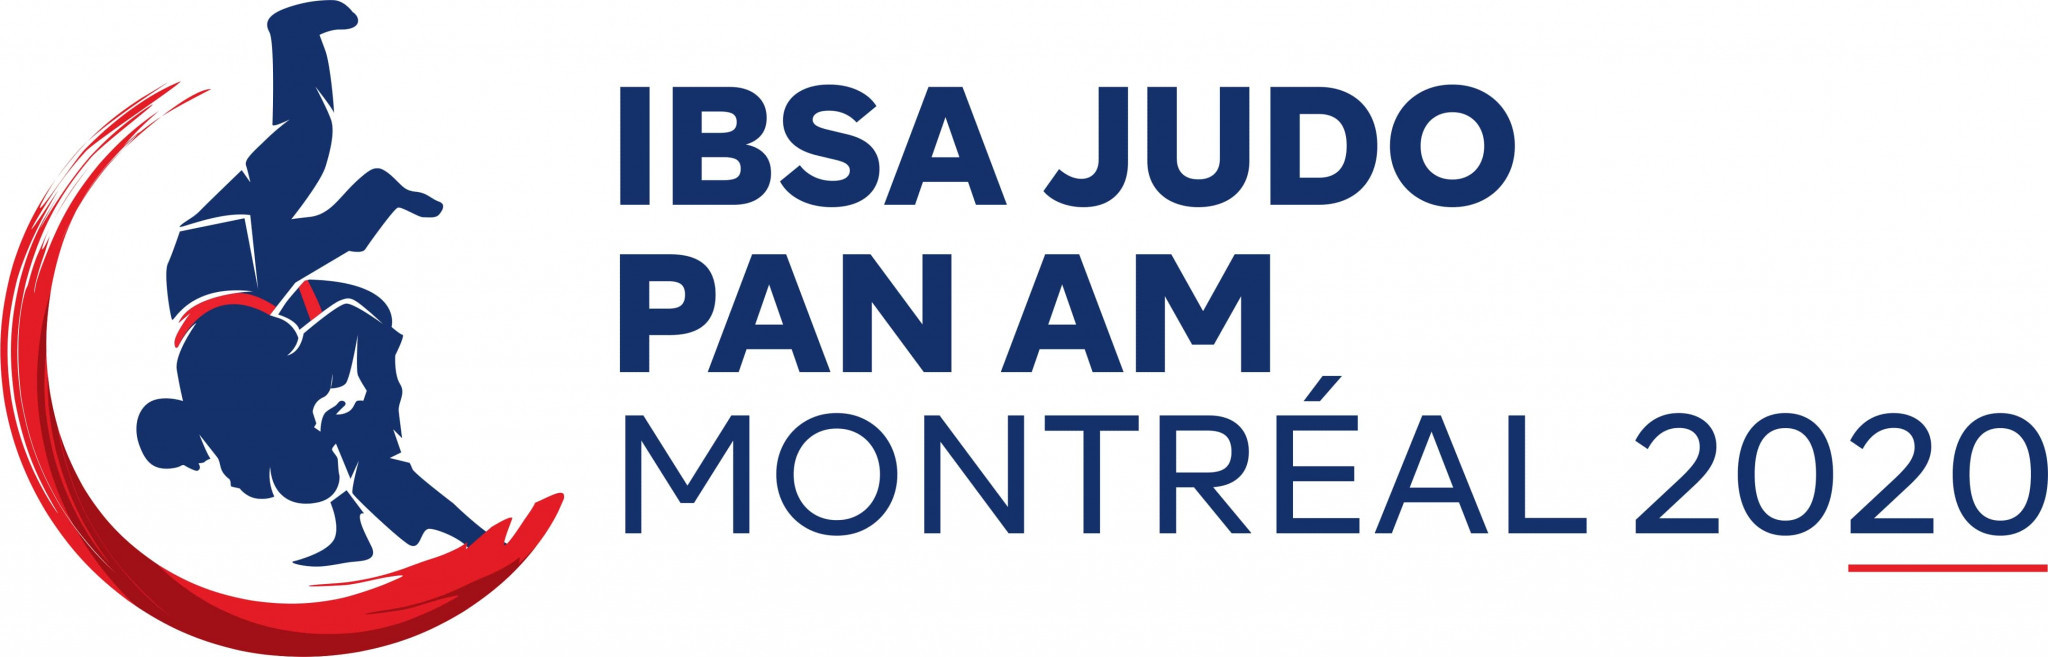 IBSA Judo American Championships offer chance for Tokyo 2020 qualification points